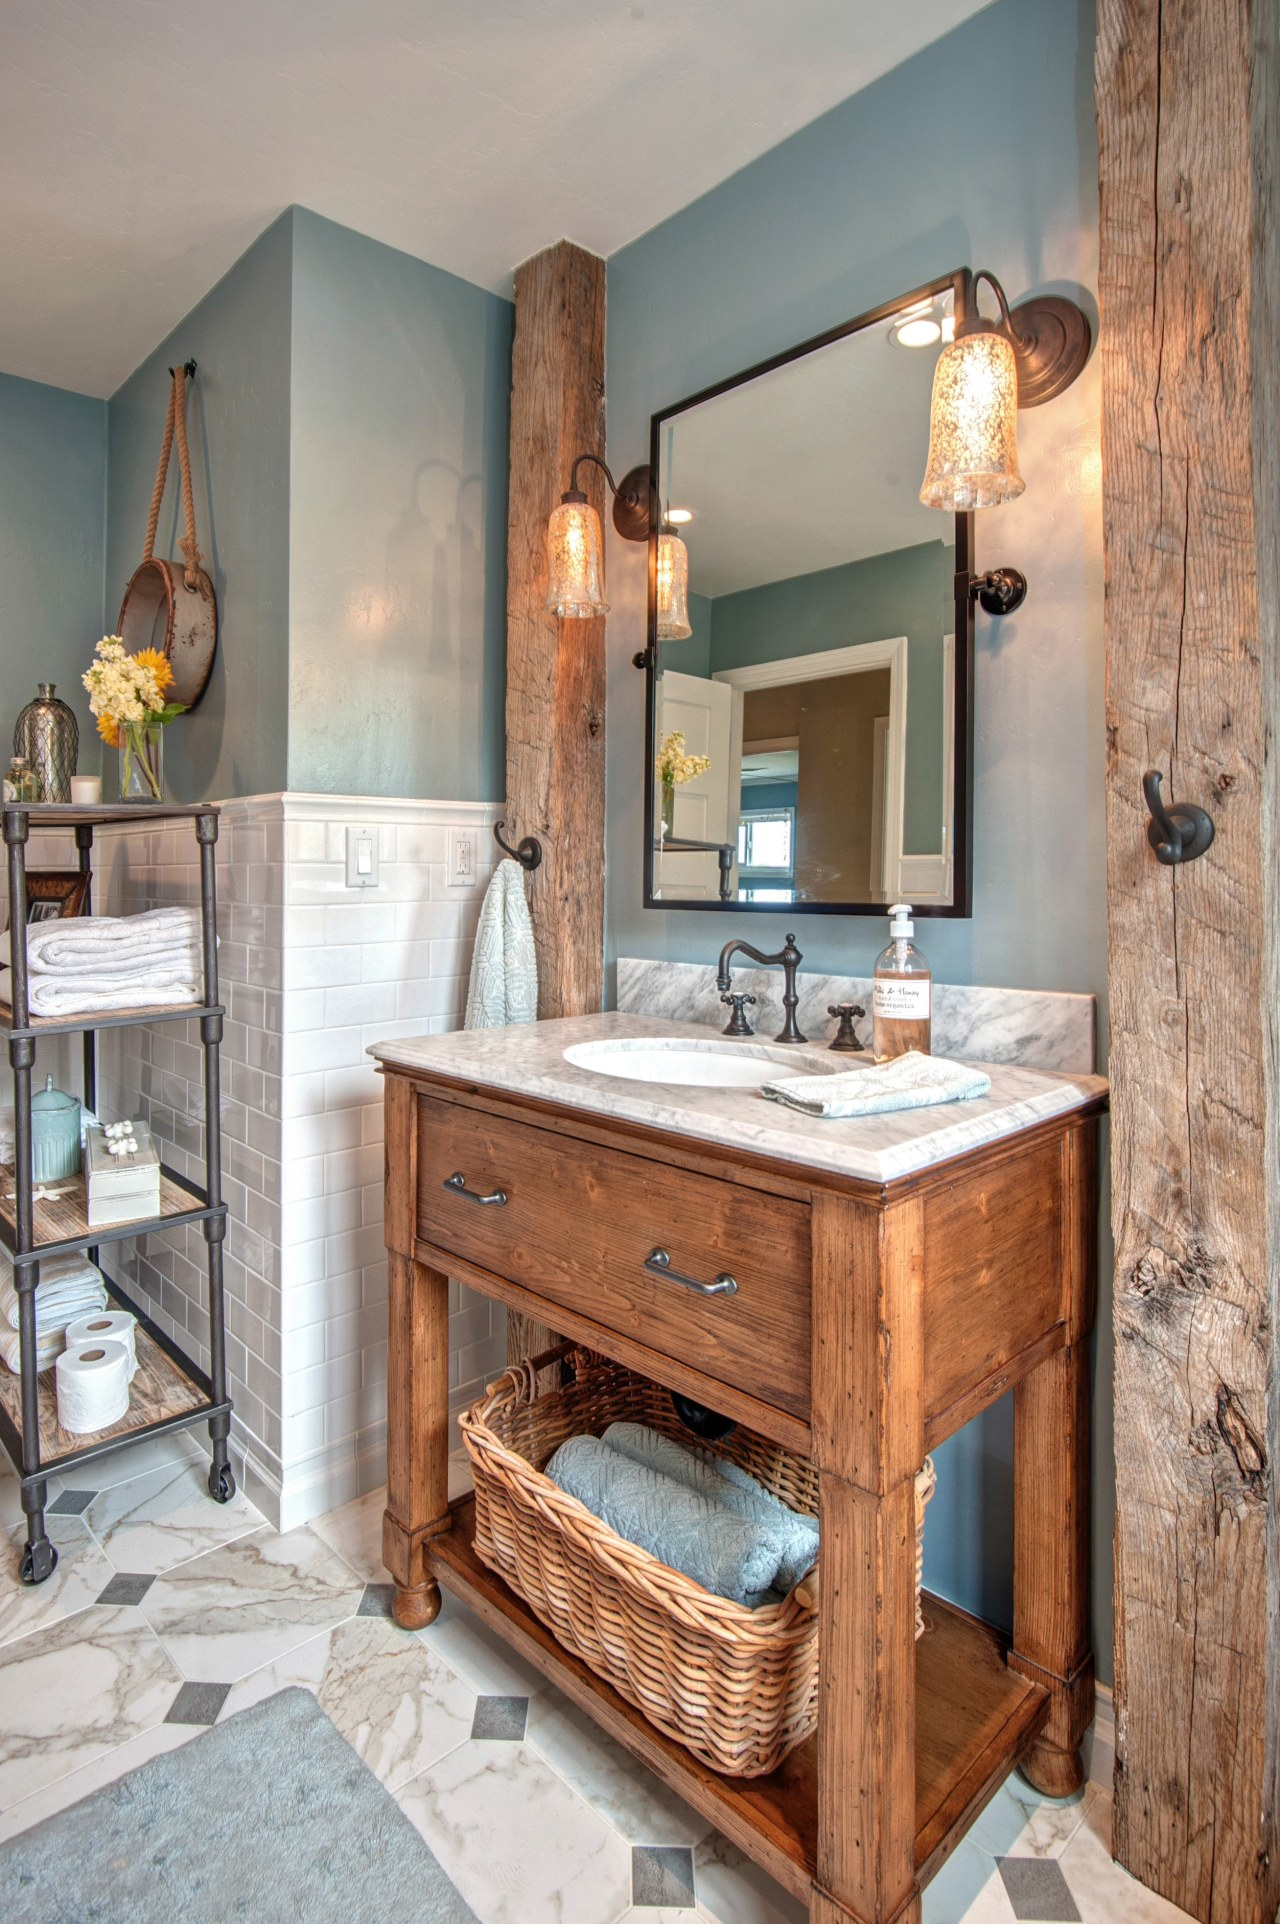 This modest guest bathroom celebrates a relaxed seaside bathroom, bathroom cabinet, cabinetry, countertop, interior design, room, gray